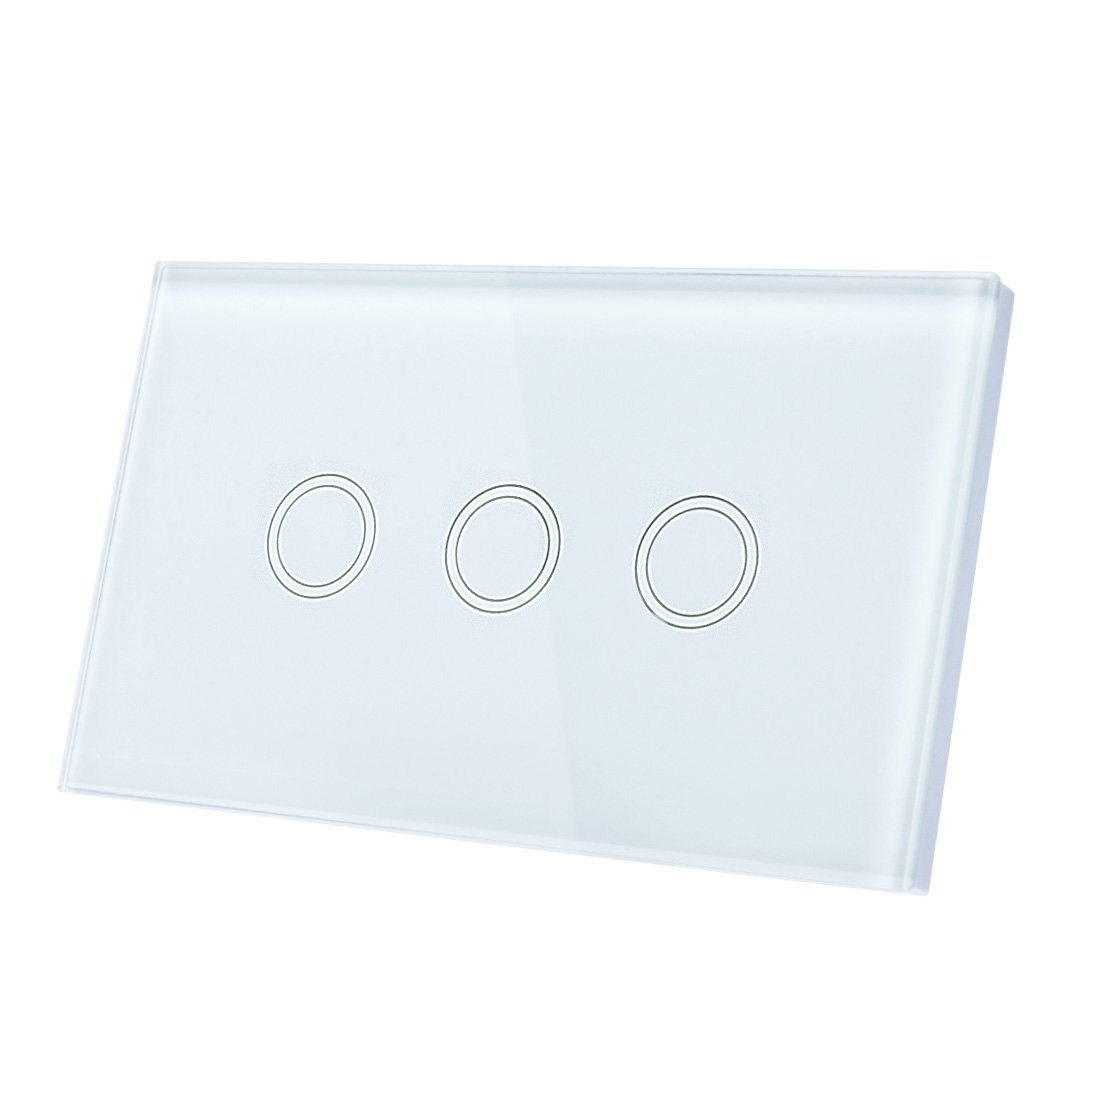 uxcell Touch Wall Light Switch, Luxury Crystal Glass Panel, AC 110-240V 1 Way 3 Gang Smart Touch Switch White US